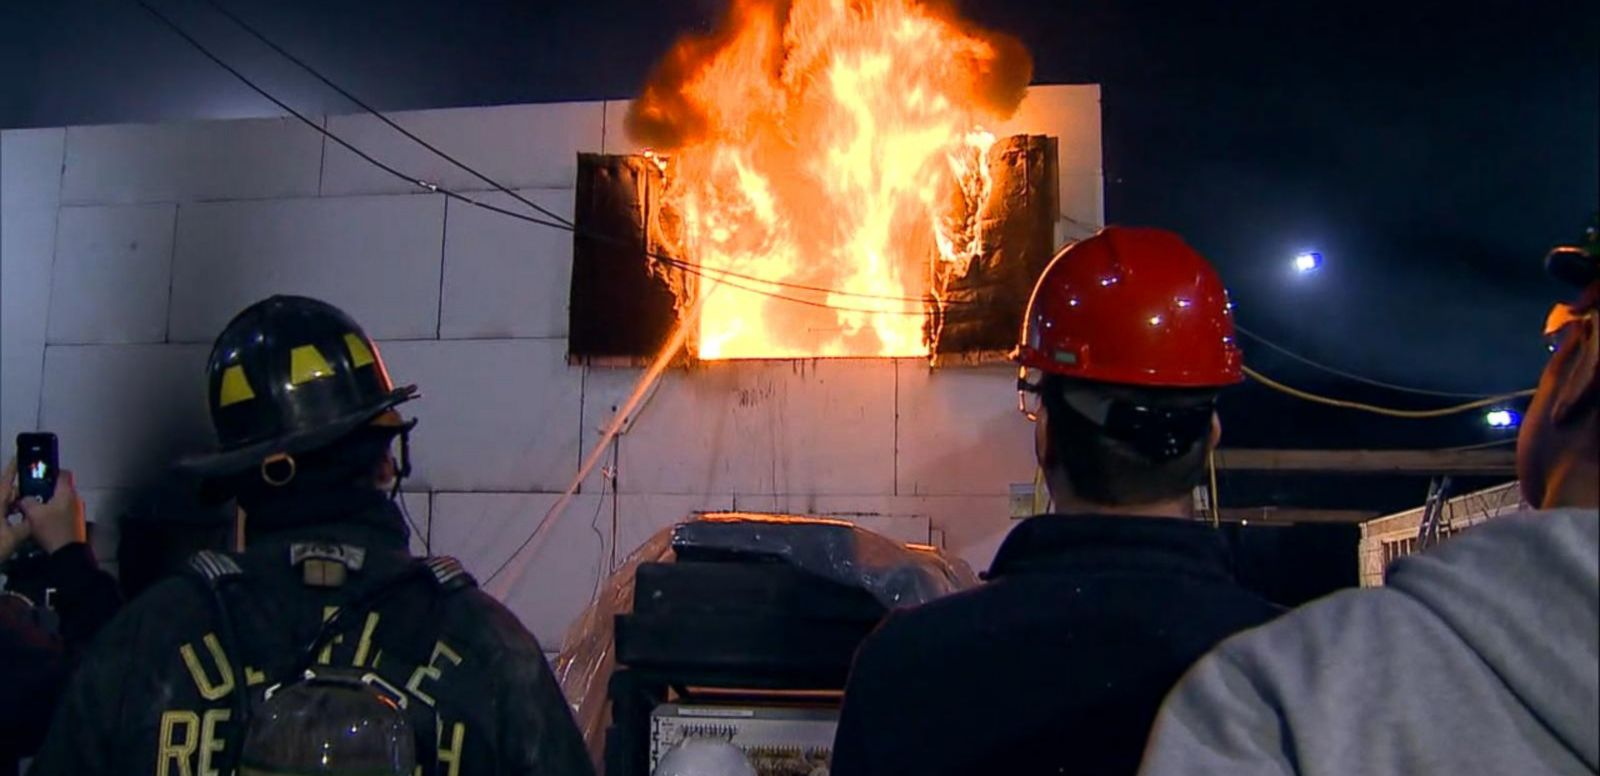 VIDEO: House Fire Survival Tips You Must Know